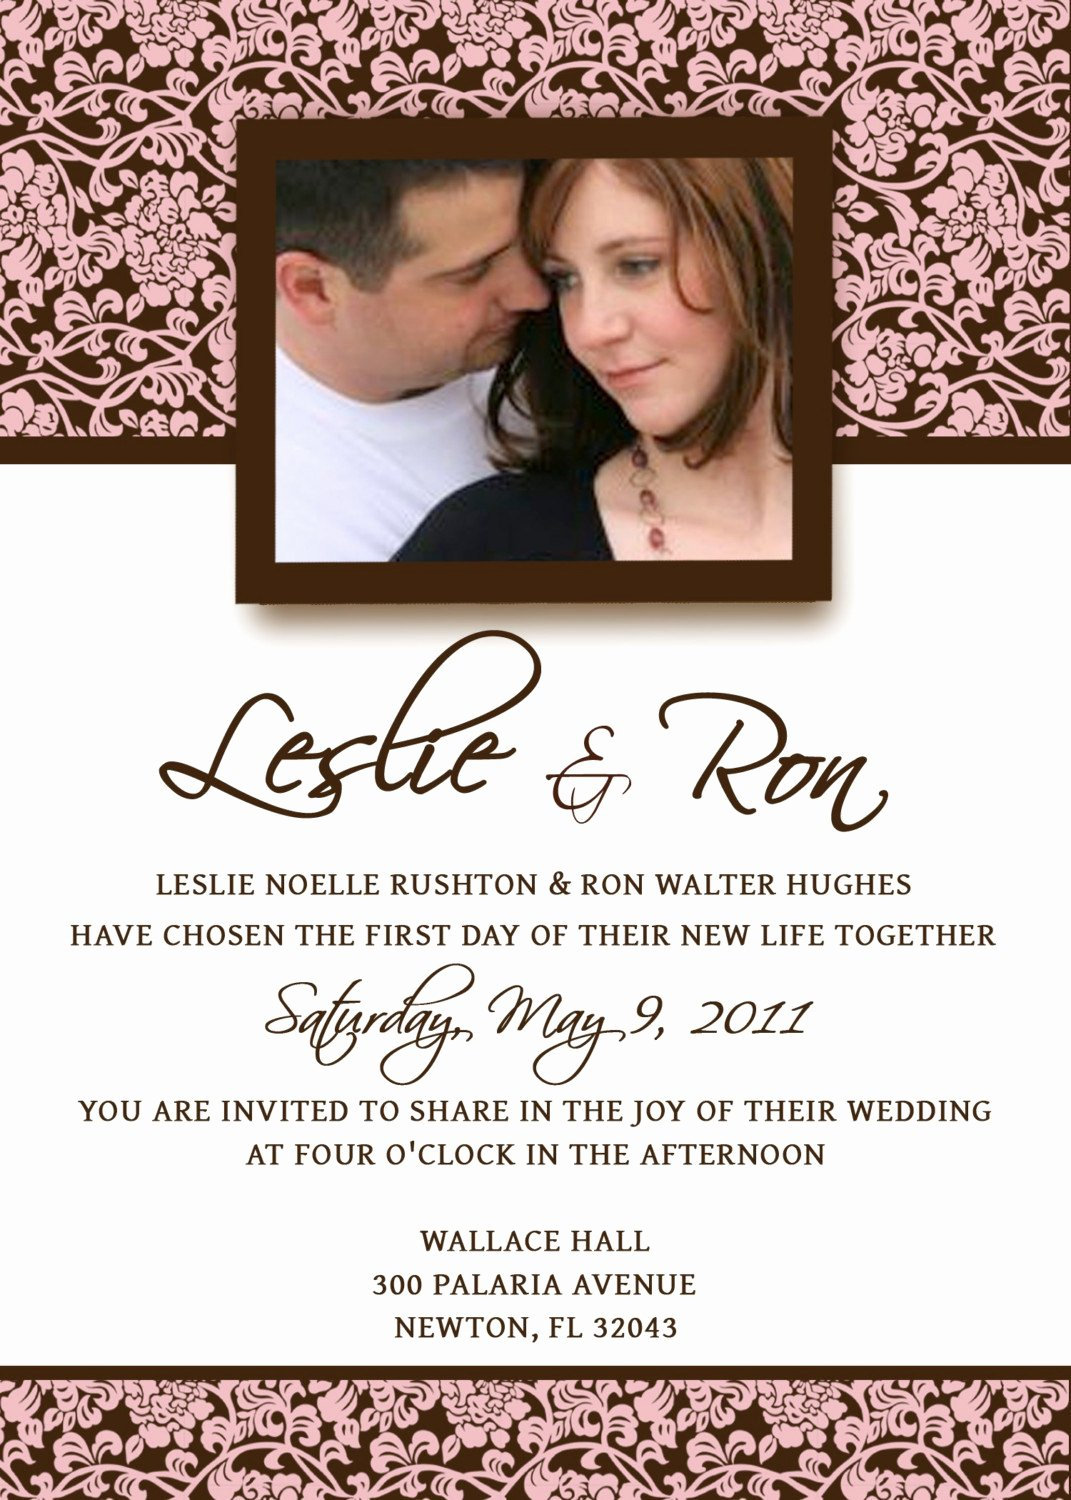 Wedding Invitation Email Template Fresh Wedding Invitation Wording Wedding Invitation Template Email